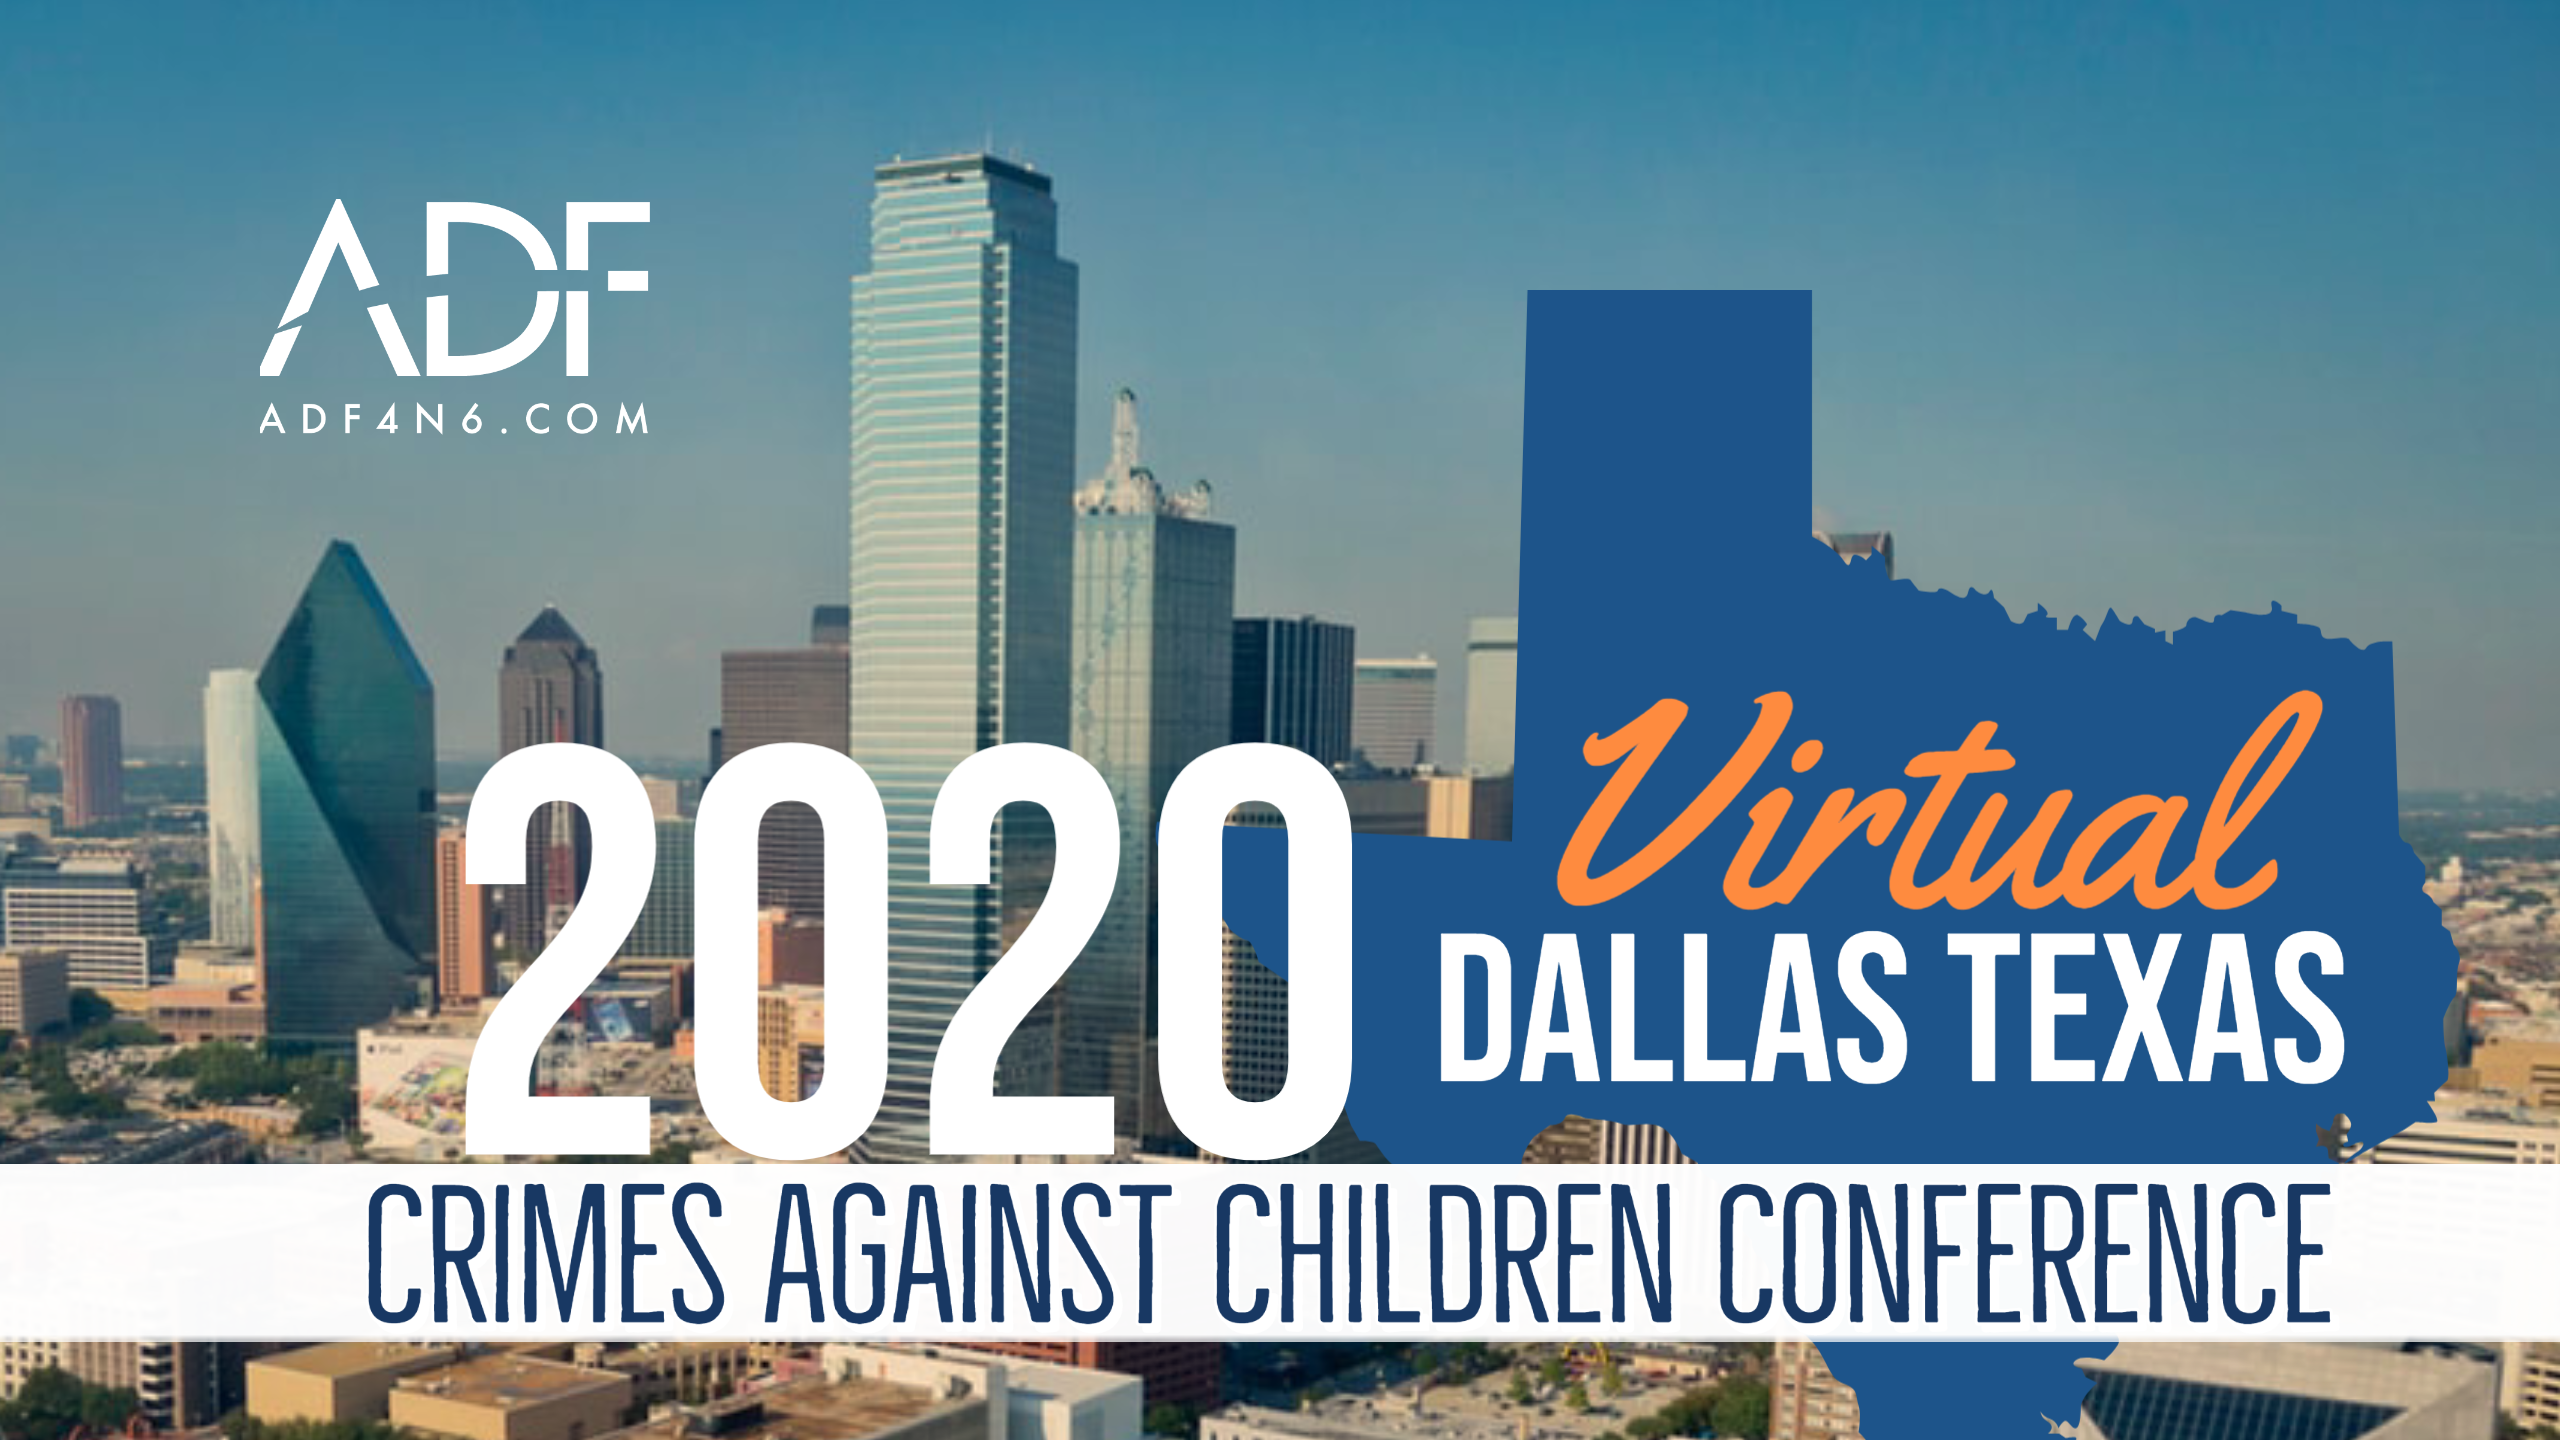 2020 Crimes Against Children Conference: Dallas Texas